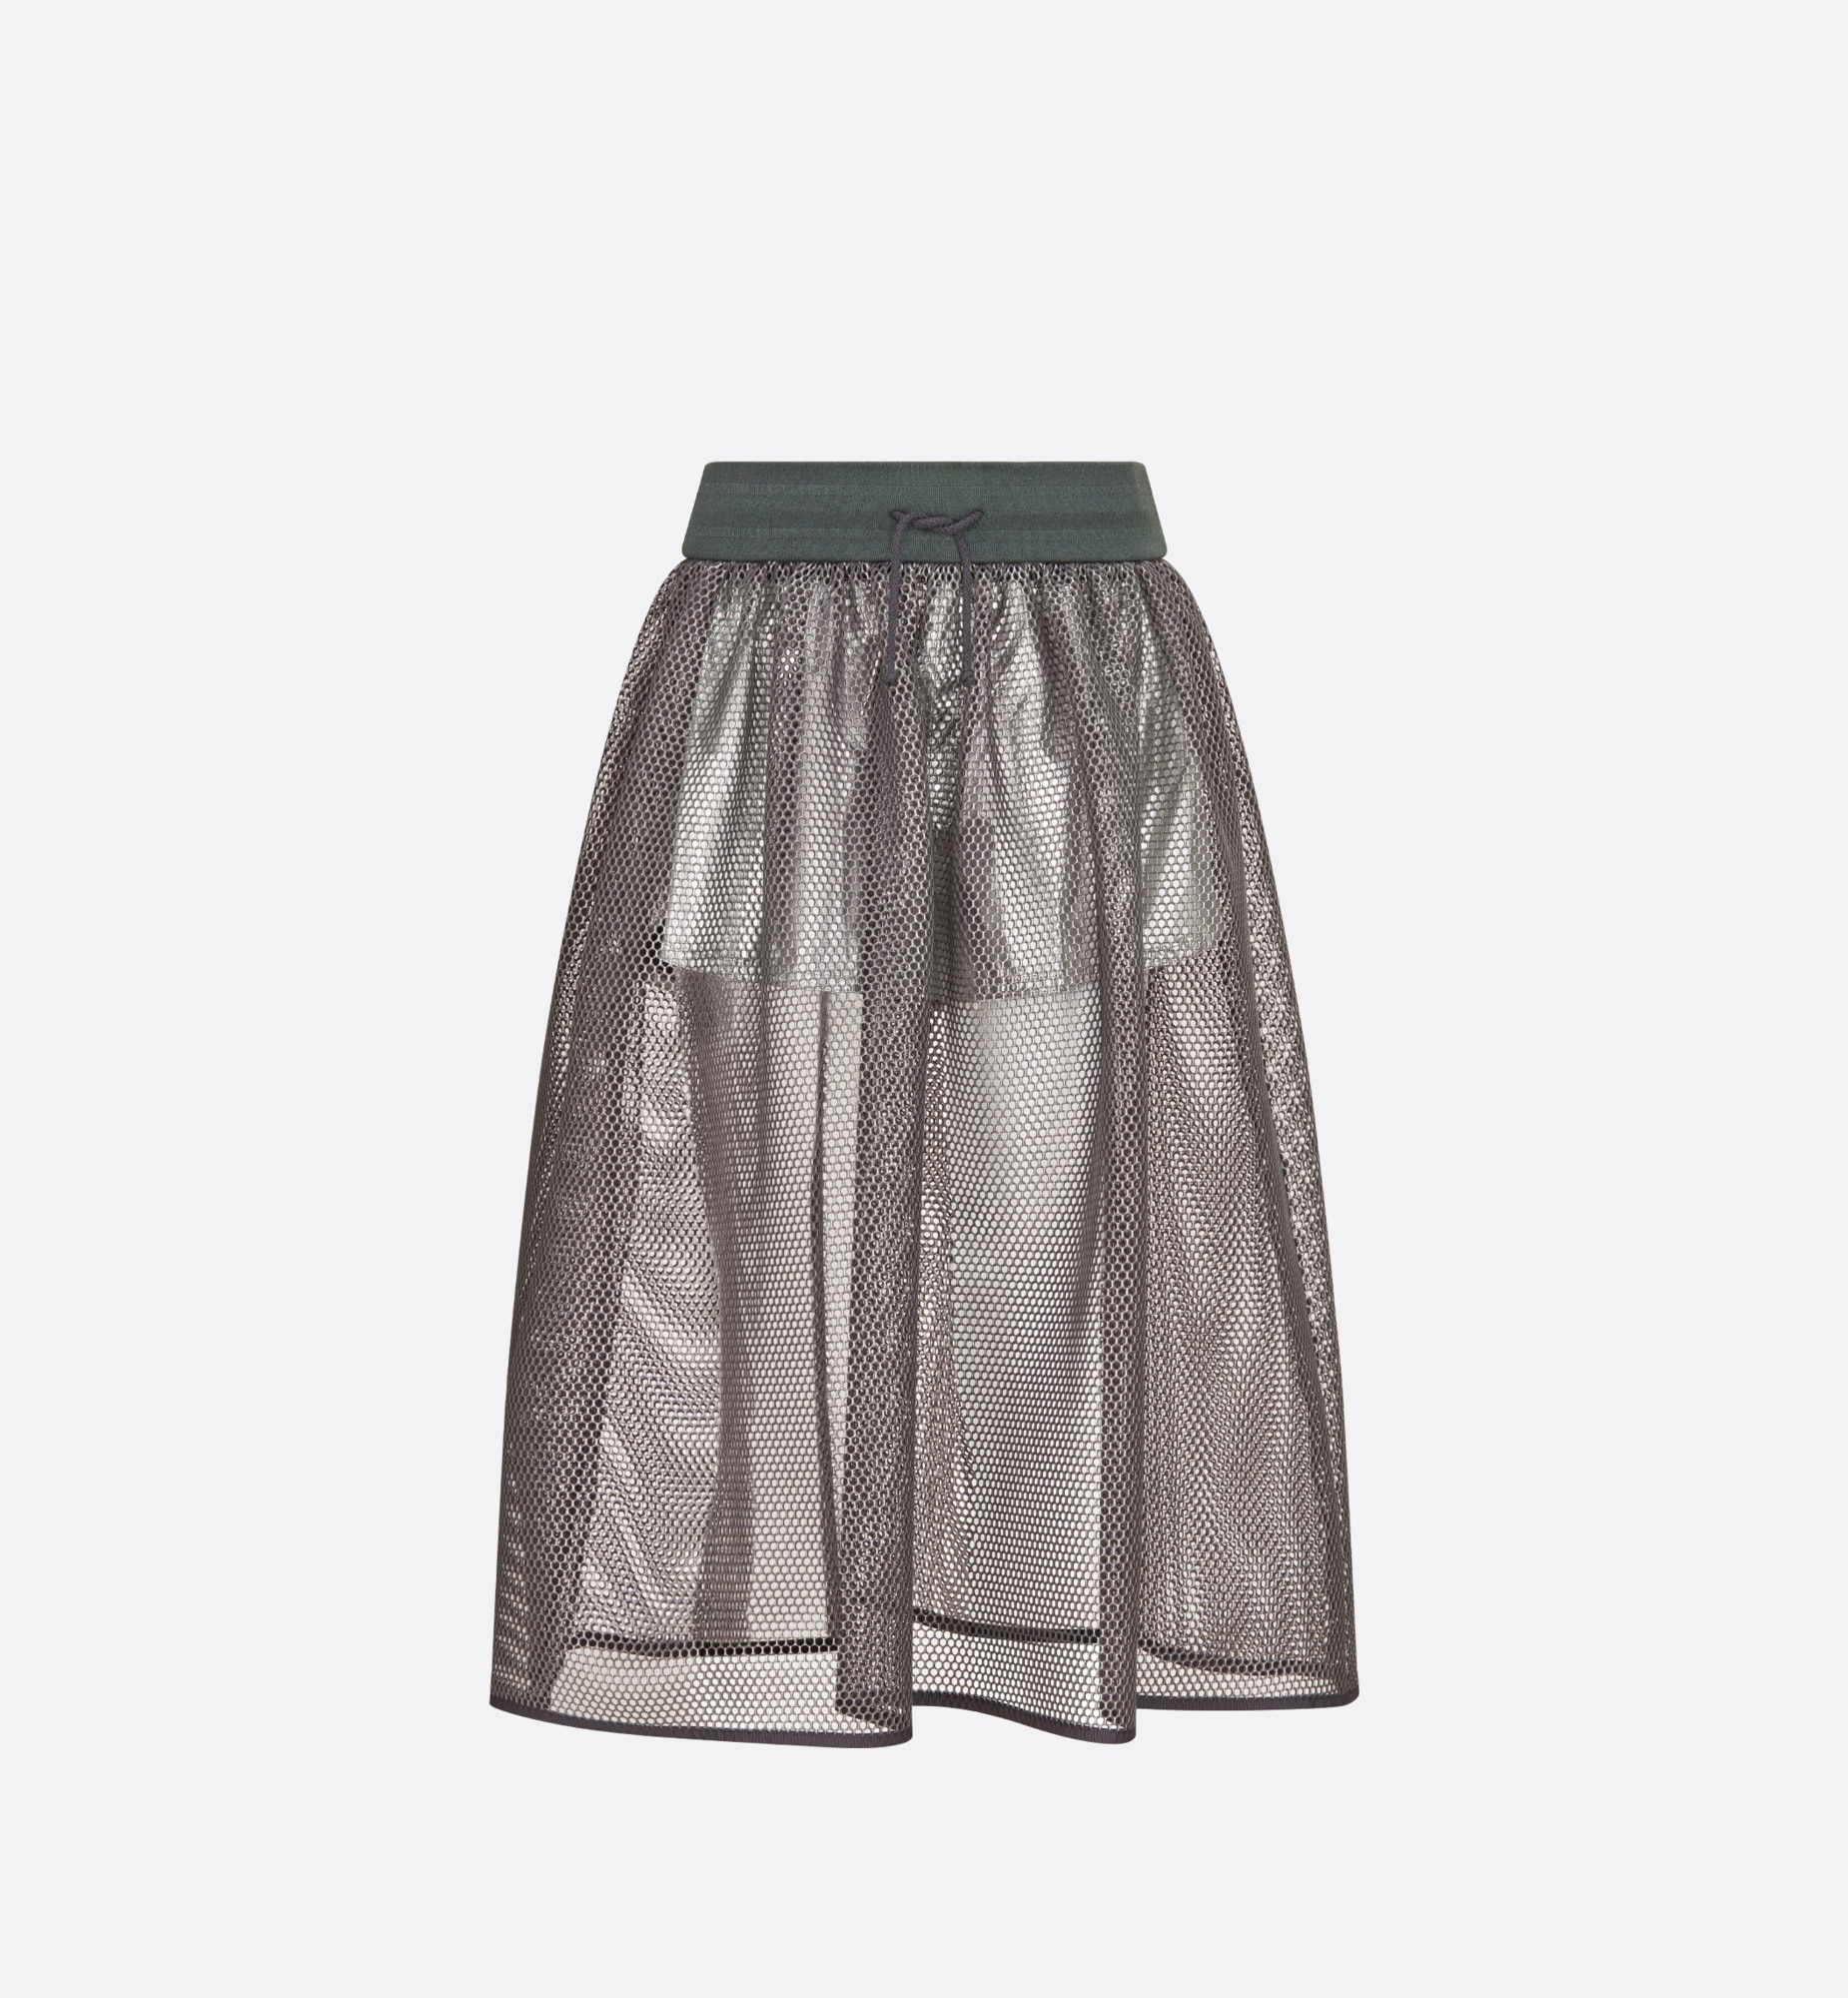 mid-length skirt | Dior Front view